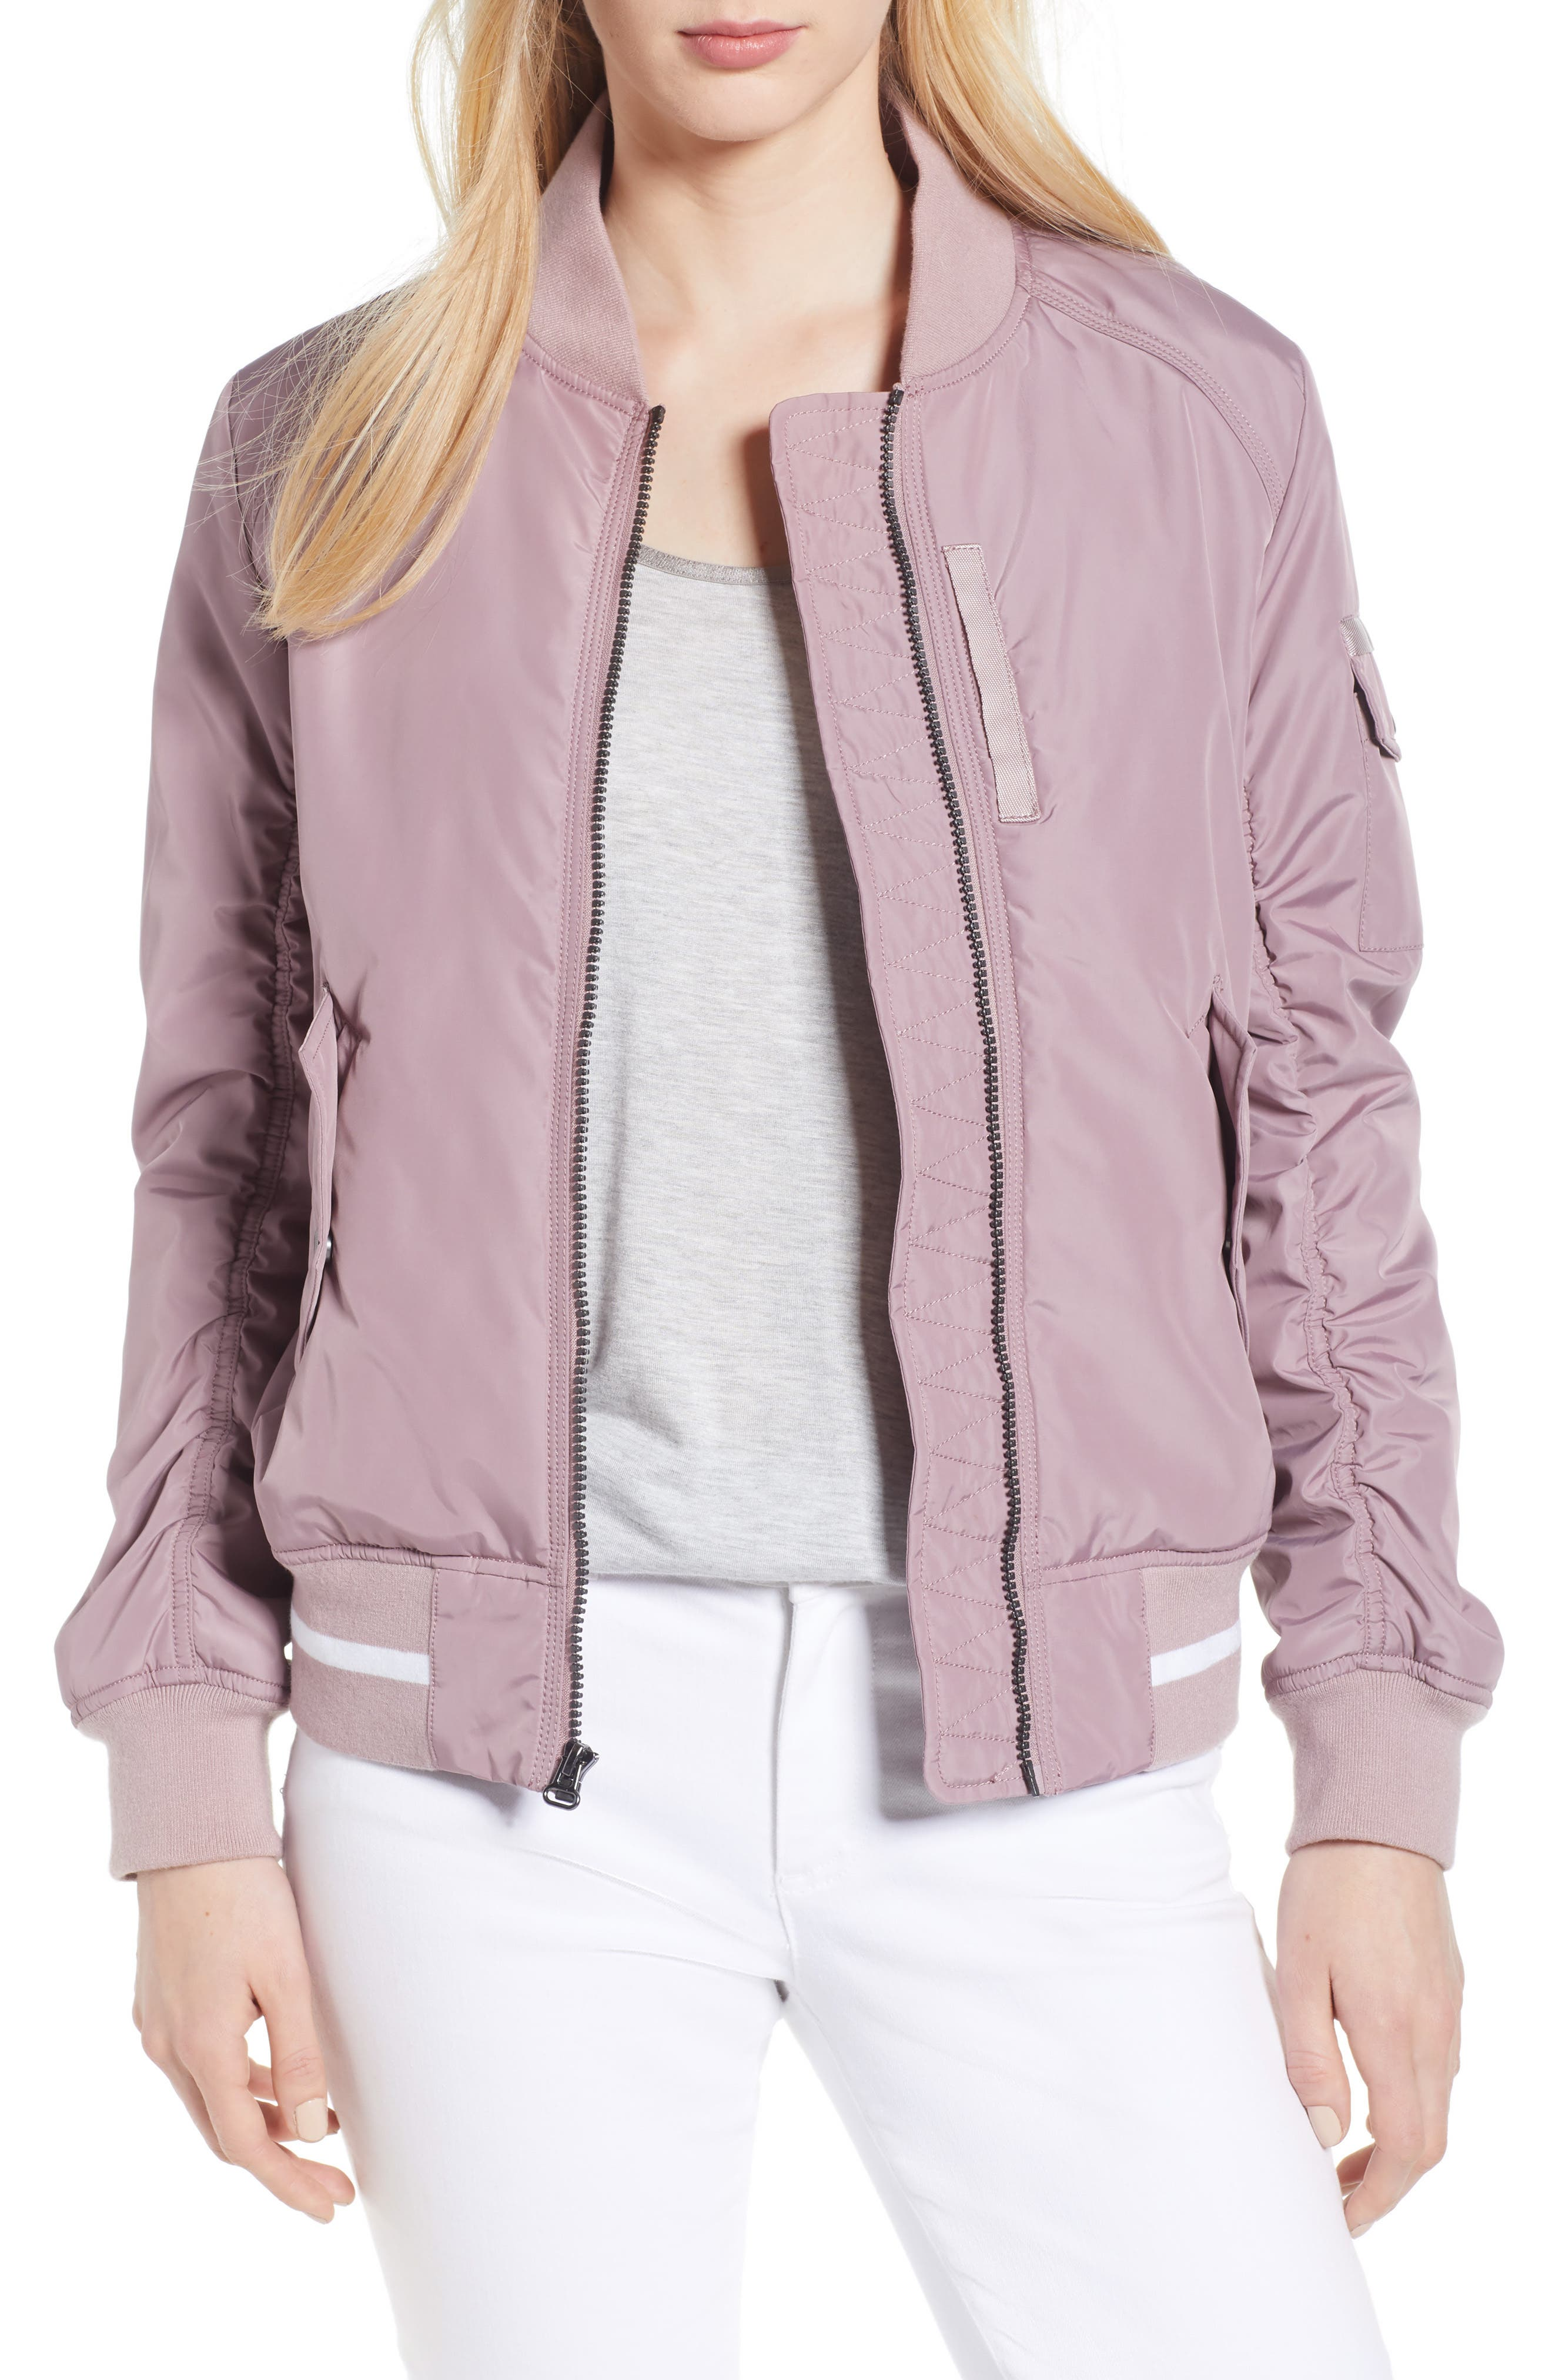 Foster Nylon Twill Bomber Jacket,                             Main thumbnail 1, color,